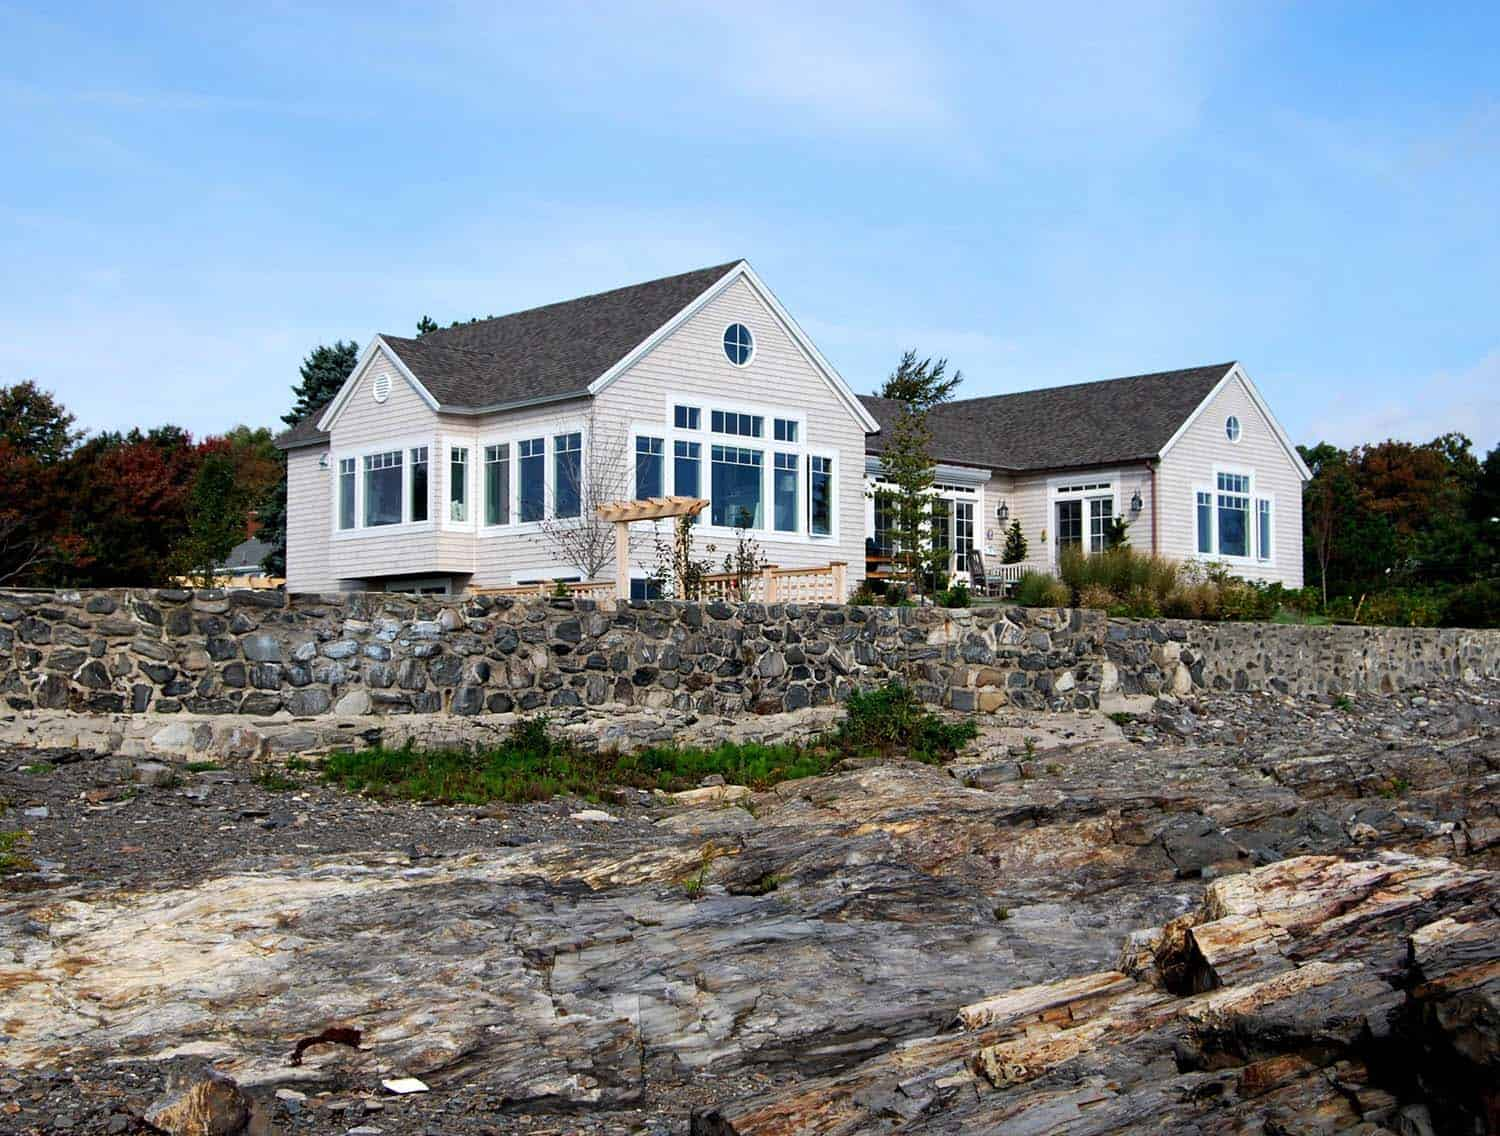 Elegant Seaside Cottage-Whipple Callender Architects-01-1 Kindesign